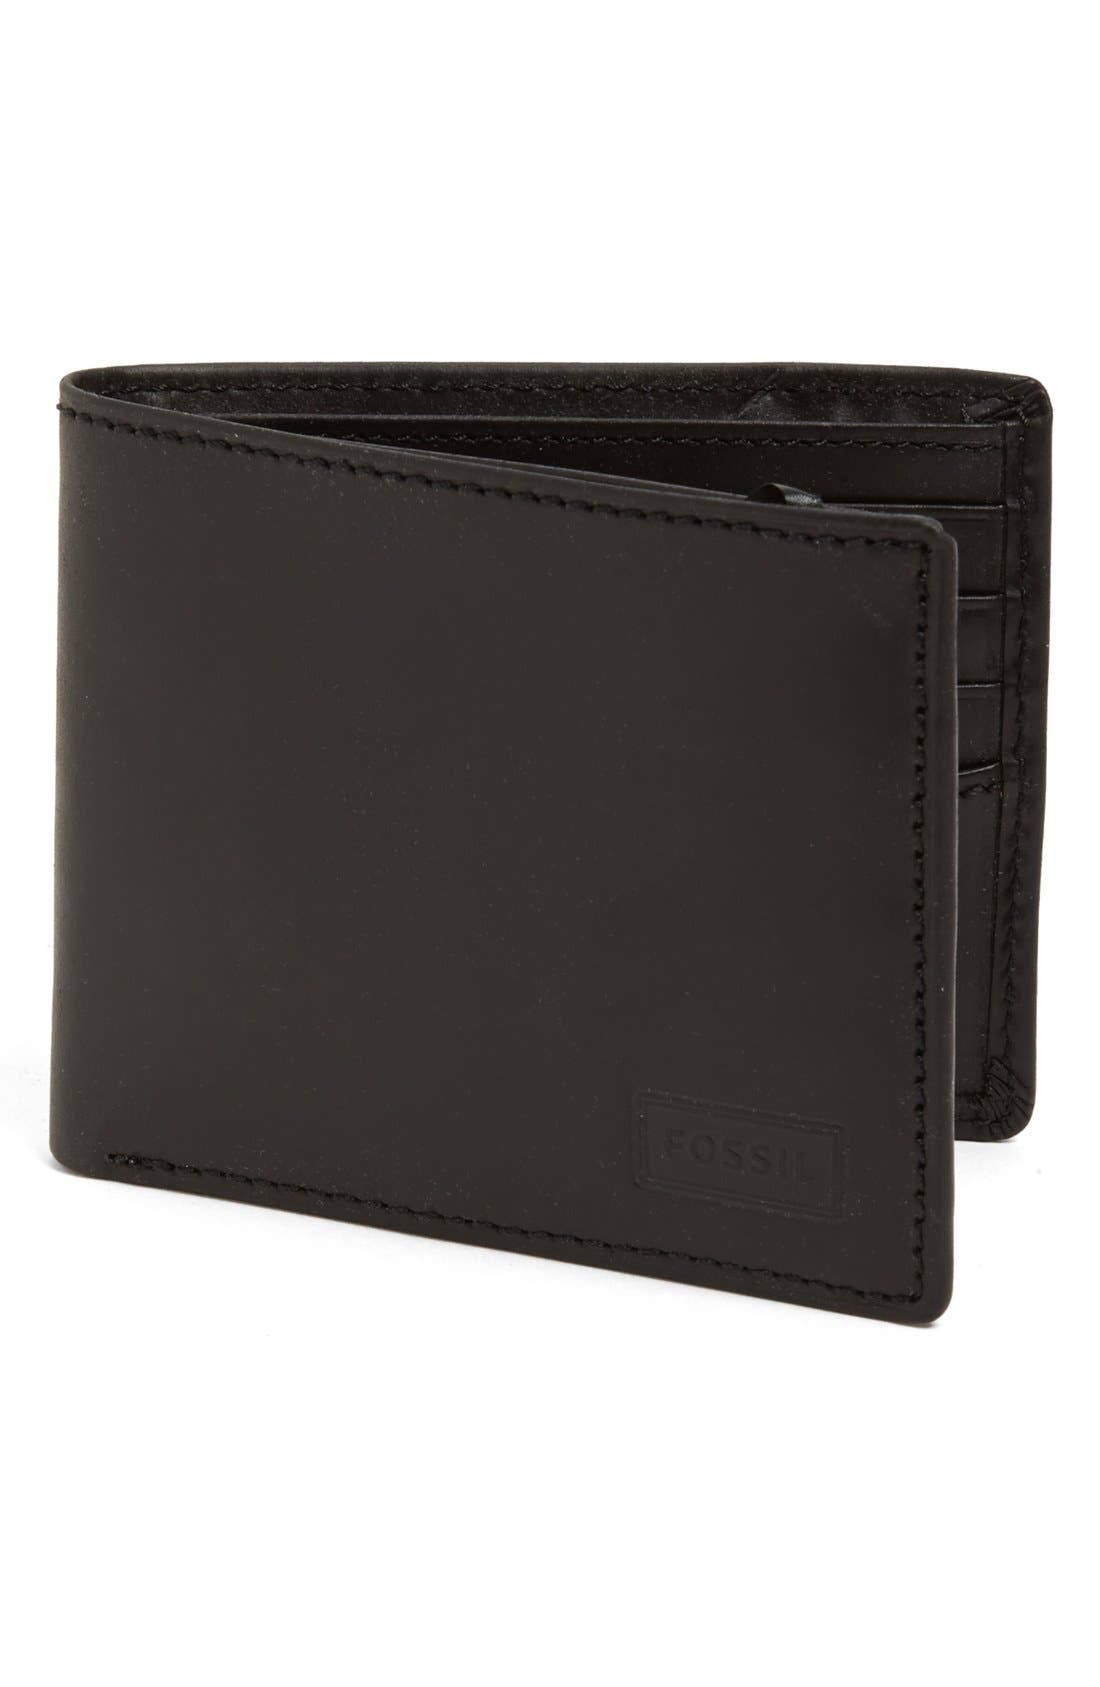 Alternate Image 1 Selected - Fossil 'Traveler' Leather Wallet